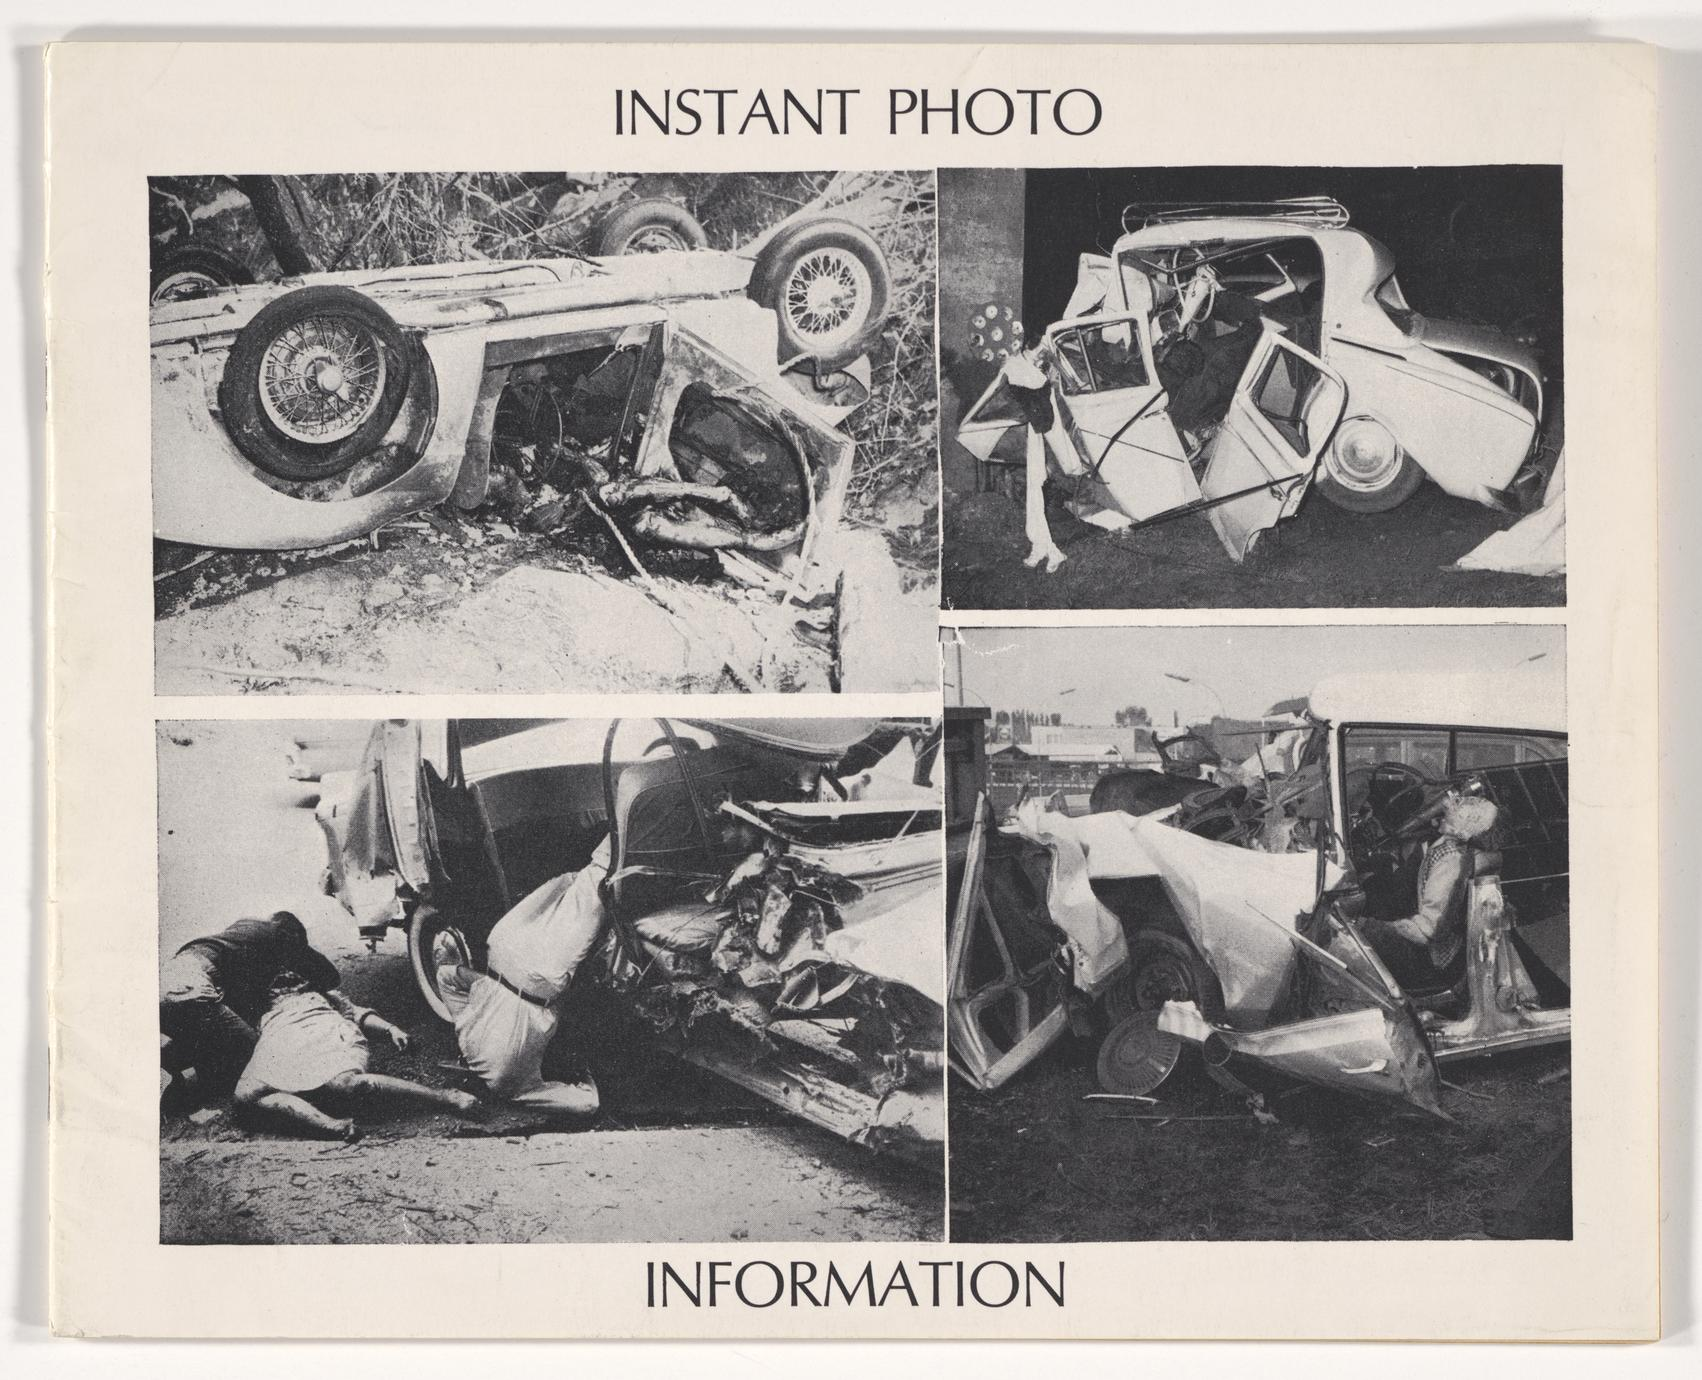 Instant photo information (1 of 3)